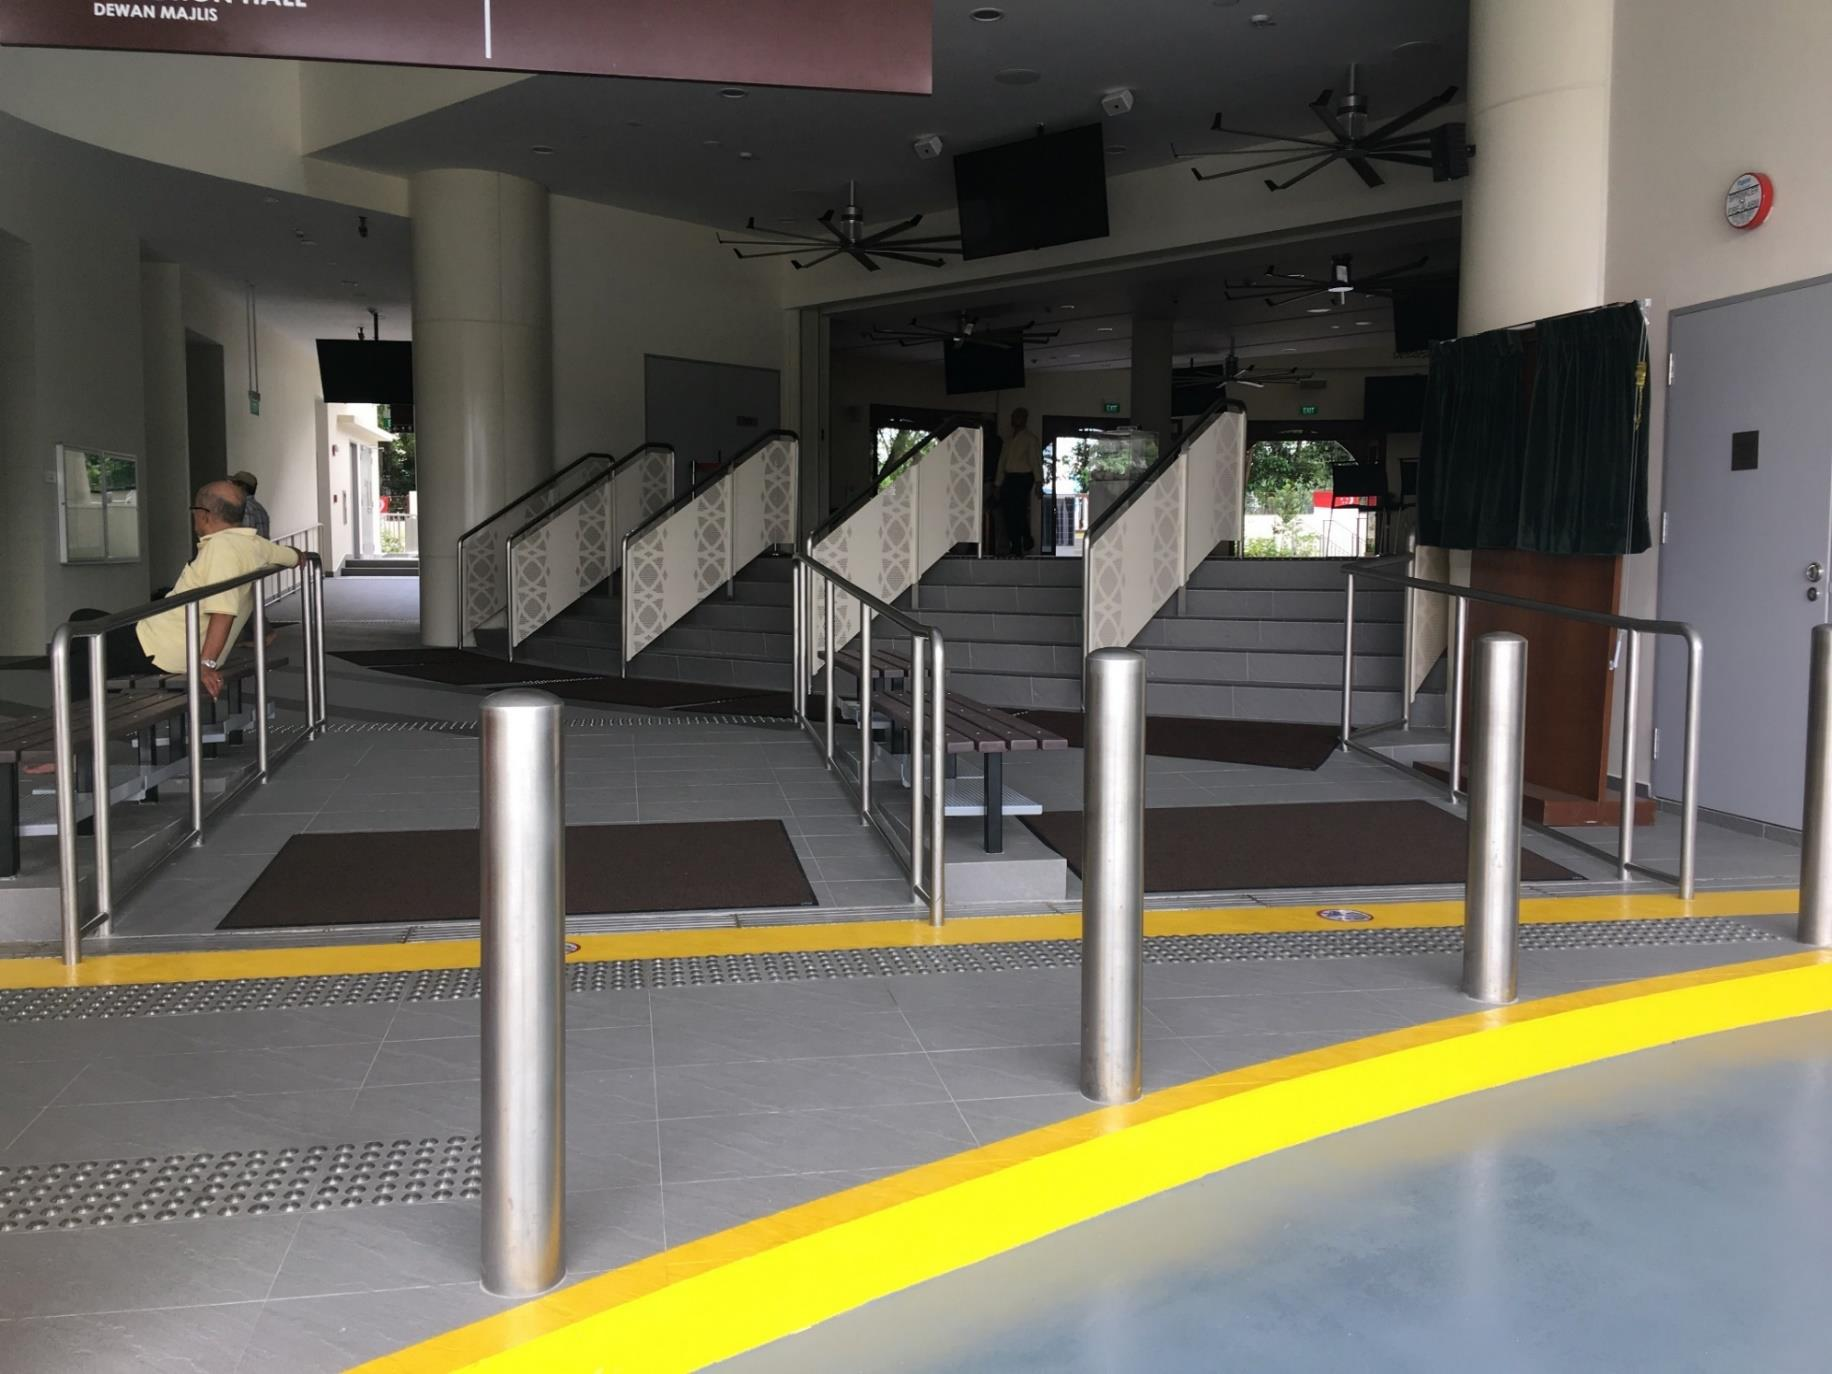 Singapore building with railings, dividers and bollards designed in stainless steel fabrication